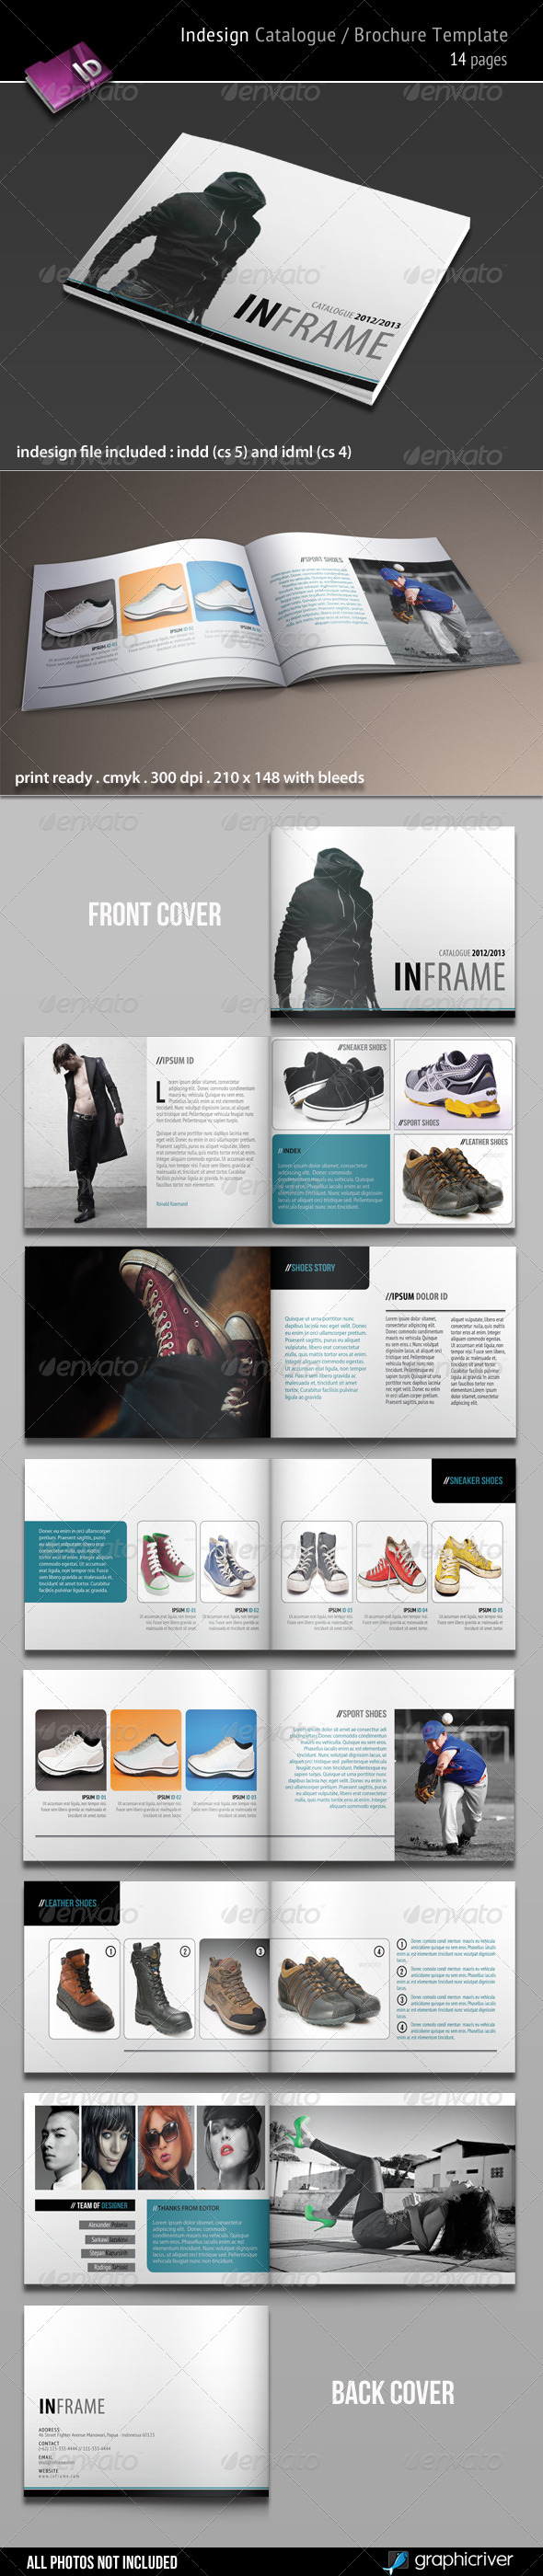 Indesign catalogue brochure template by kartodarim graphicriver for Catalog template indesign